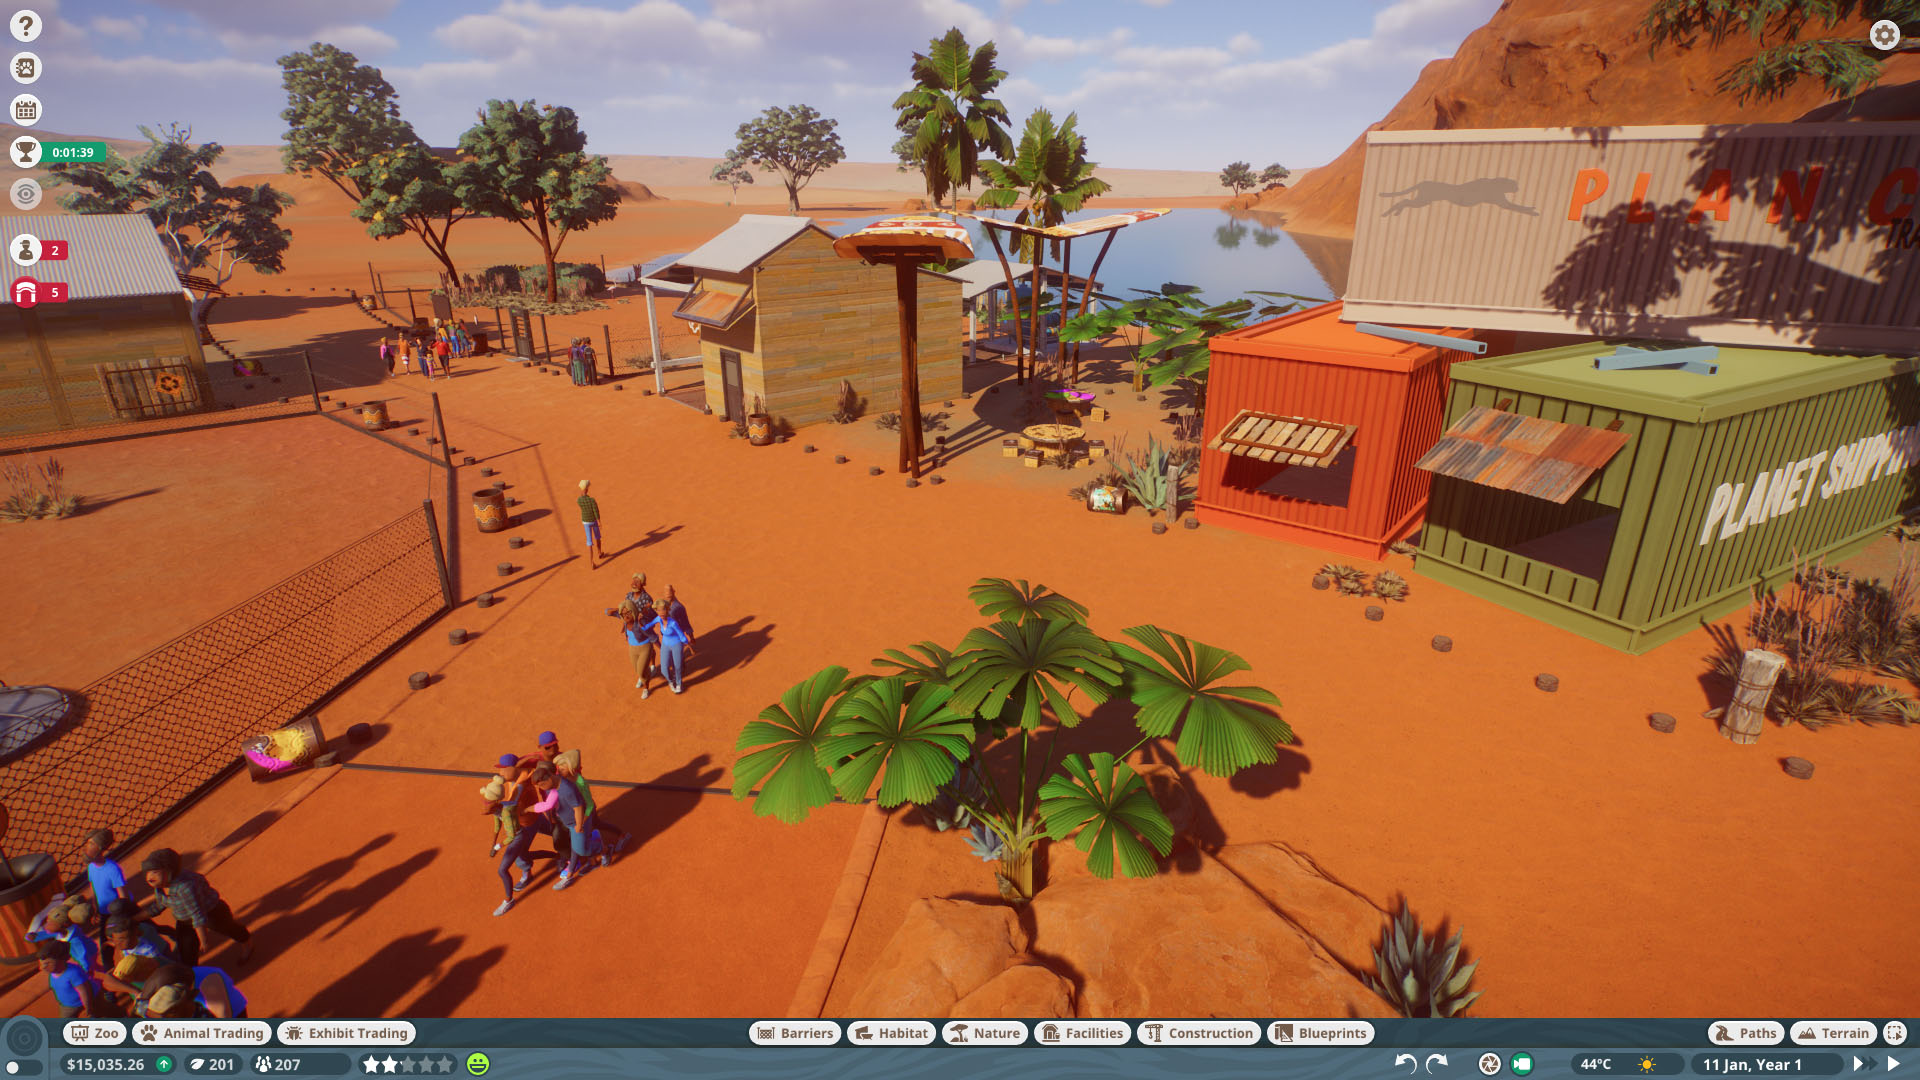 Planet Zoo How to Get All Statue rewards in Time Scenarios - Outback Comeback (Tanami Roadside Zoo) - E56EA2A